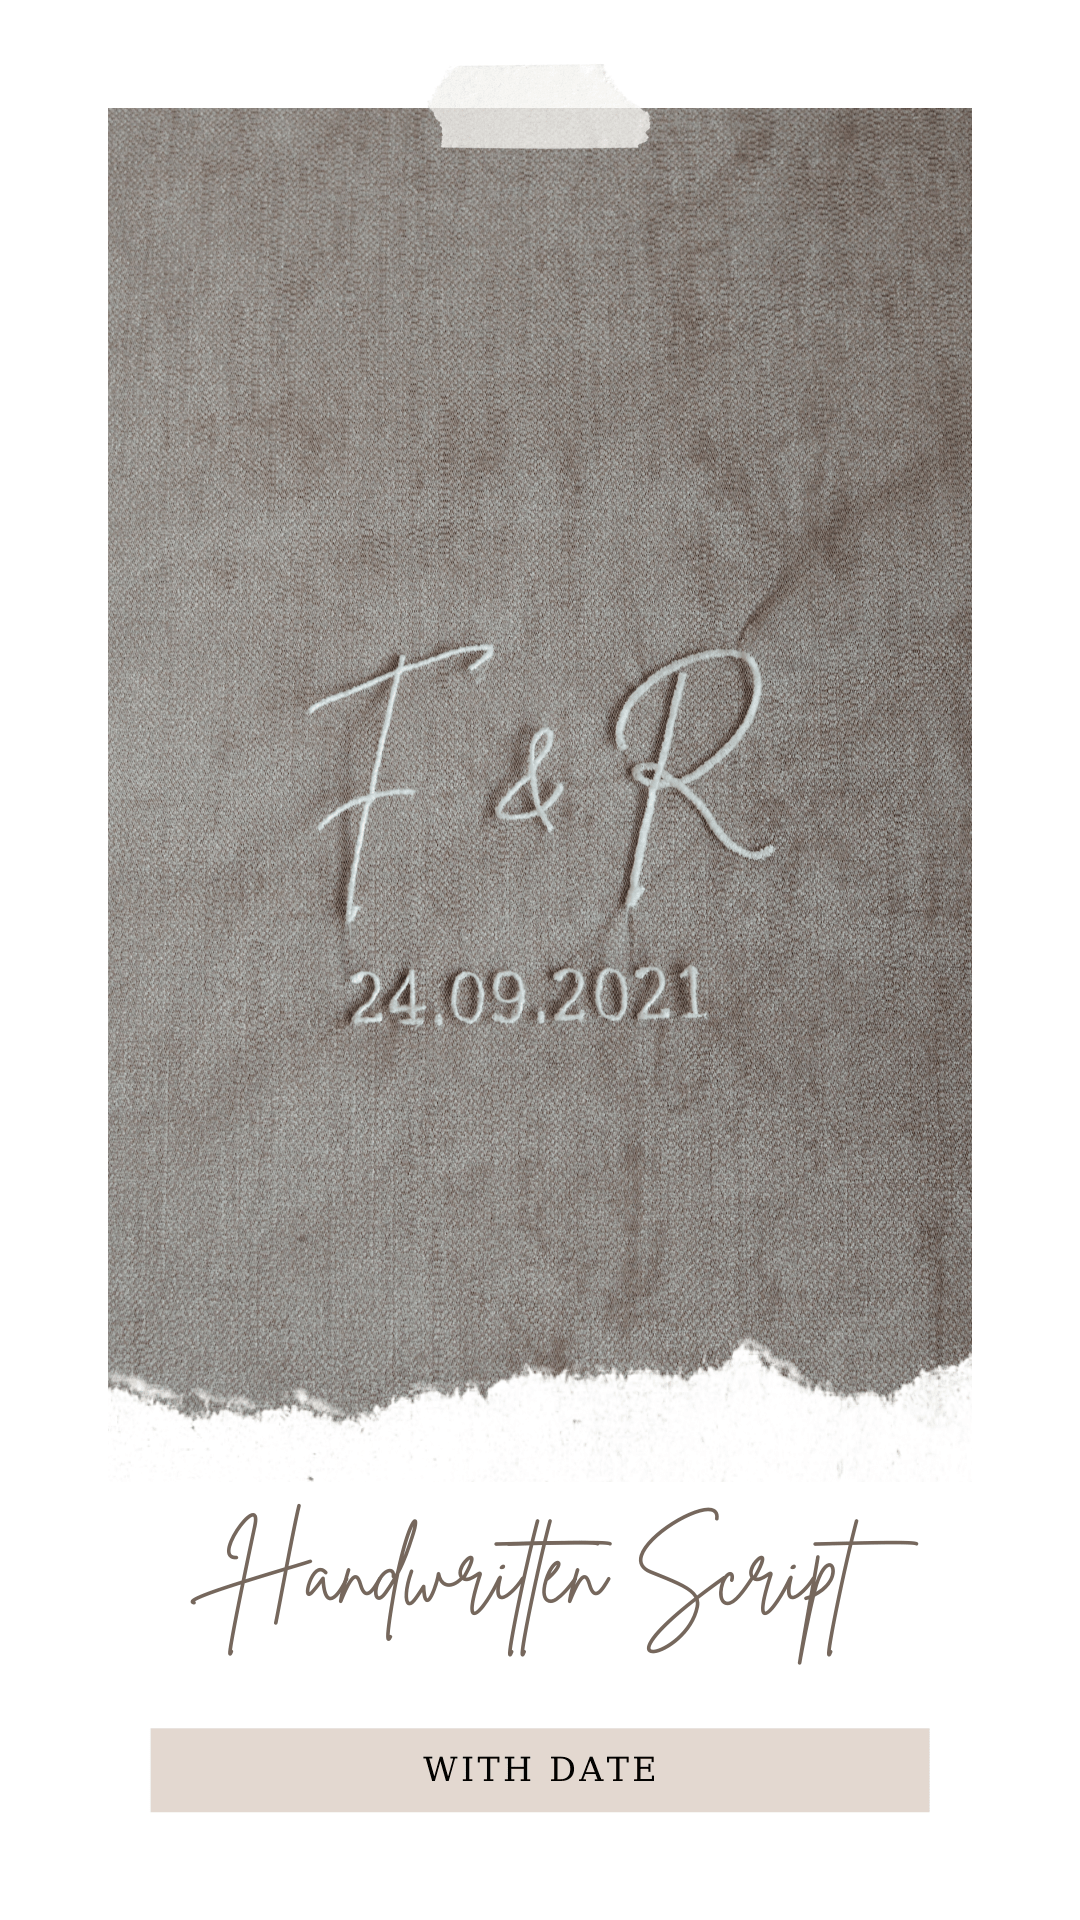 Personalised veil embroidery - monogram - handwritten script font with date